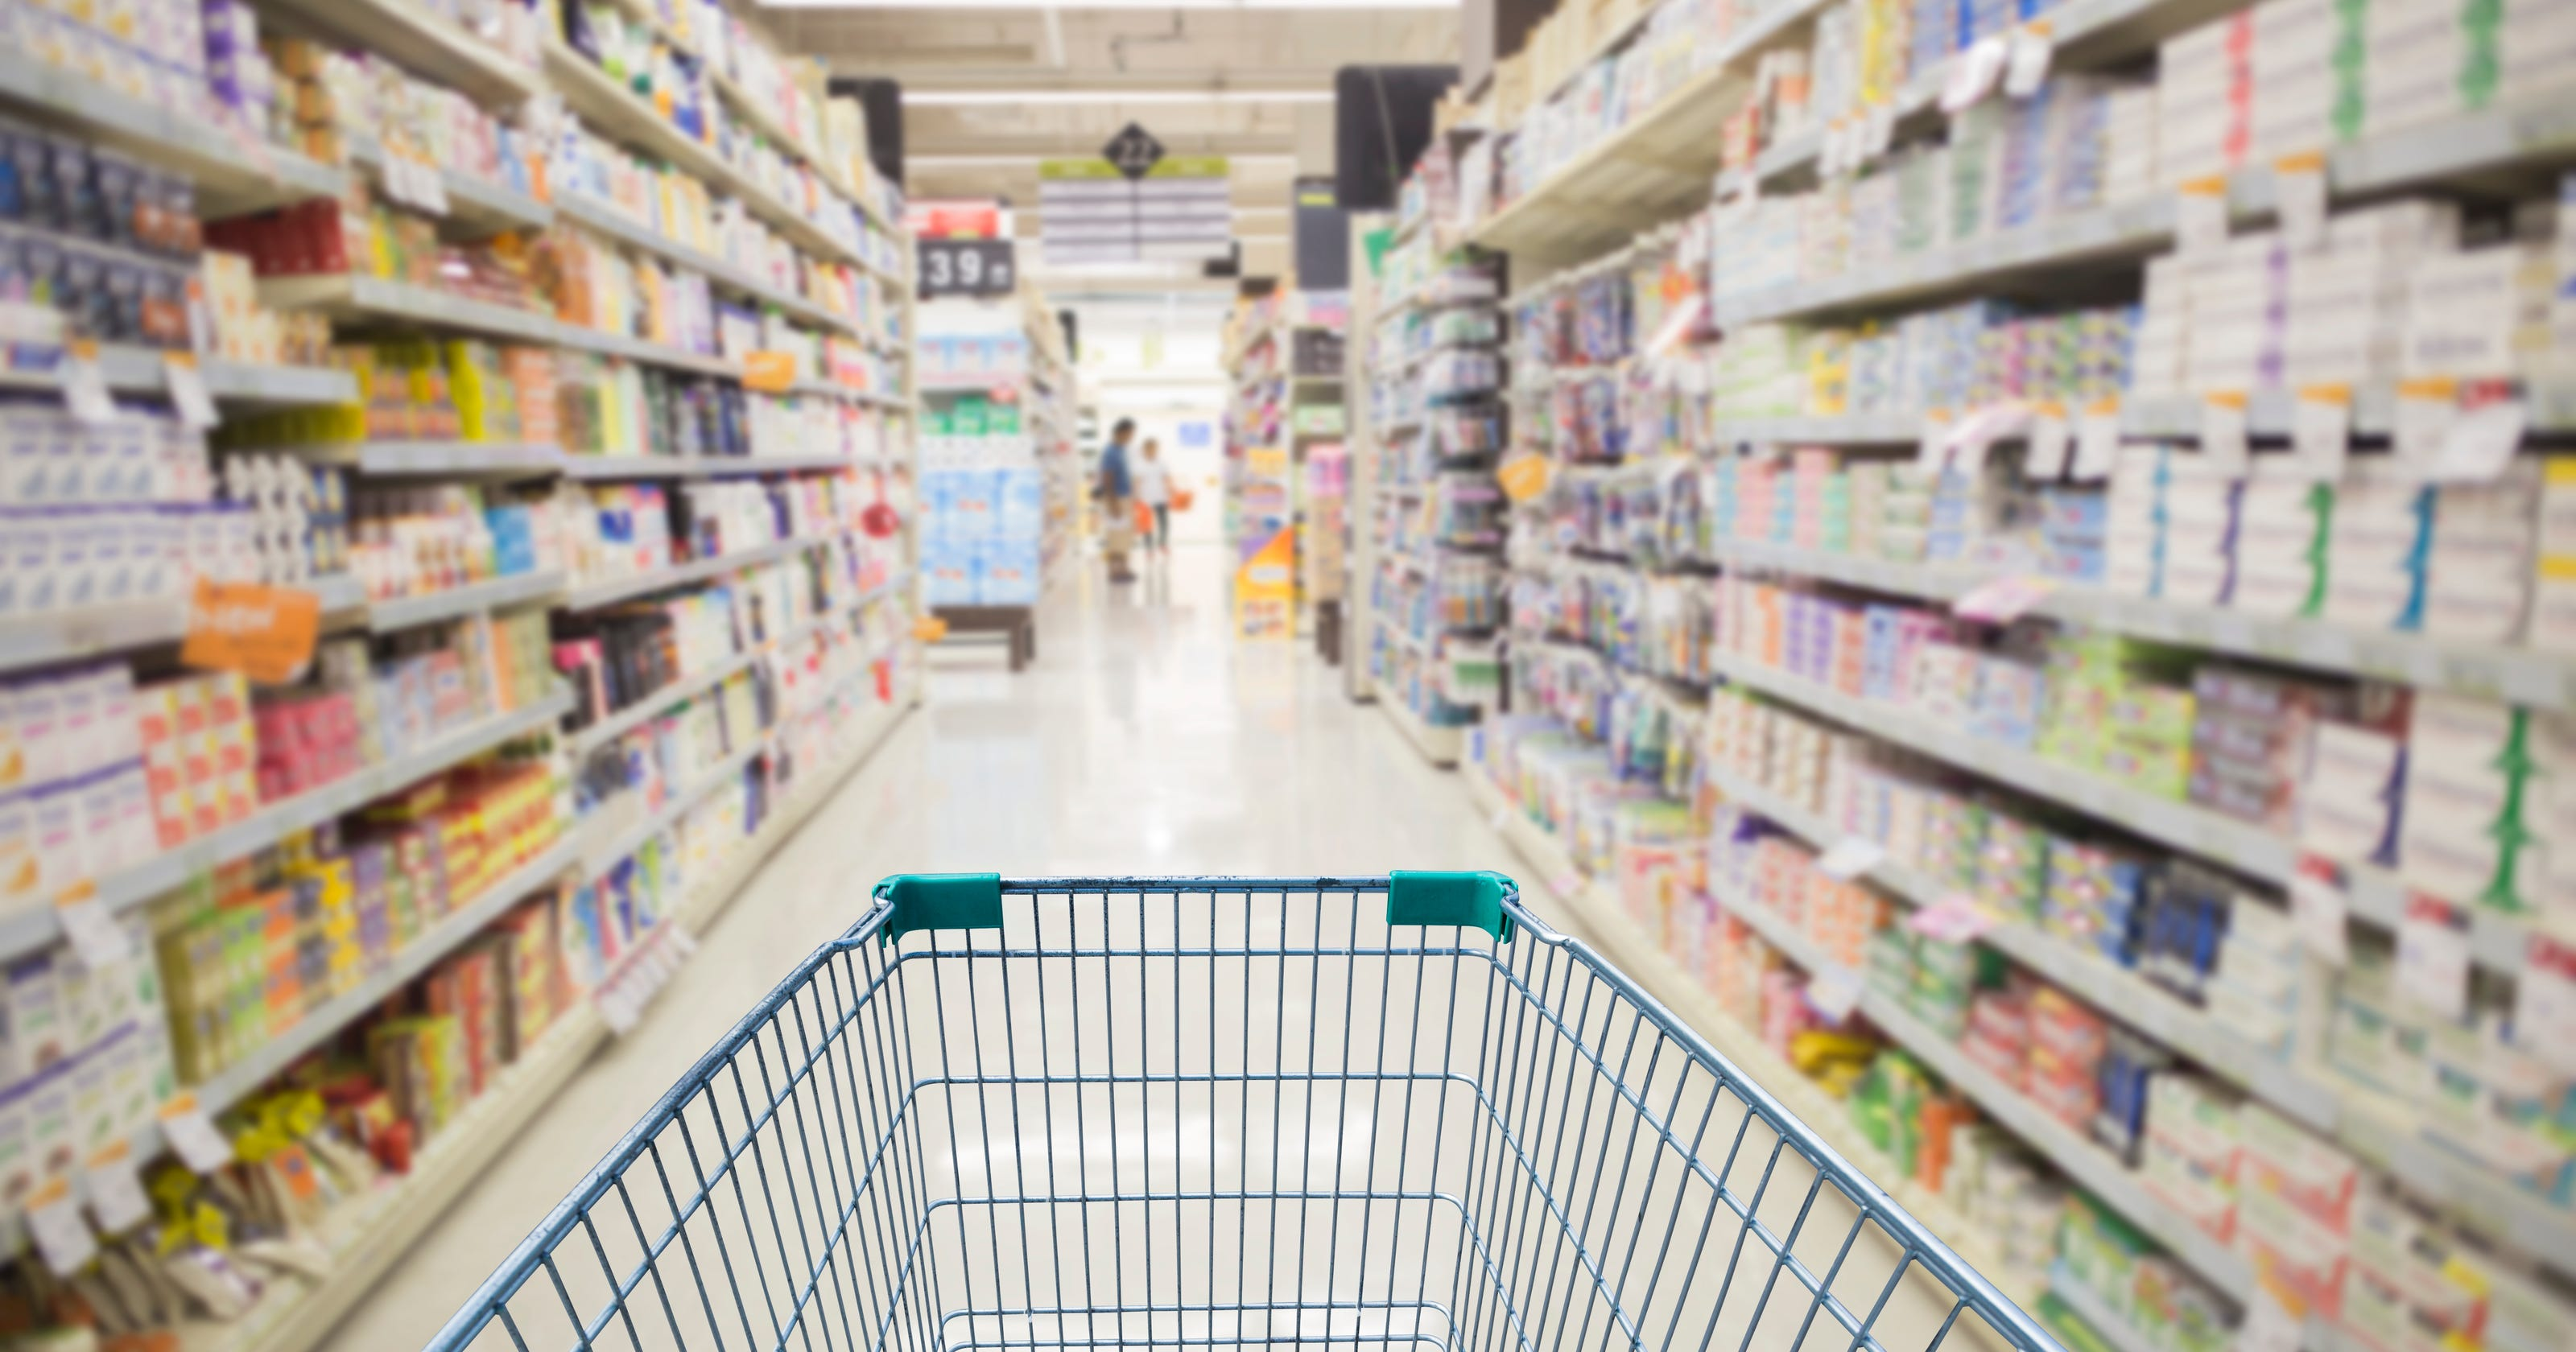 Grocery shopping is no longer a one-stop experience